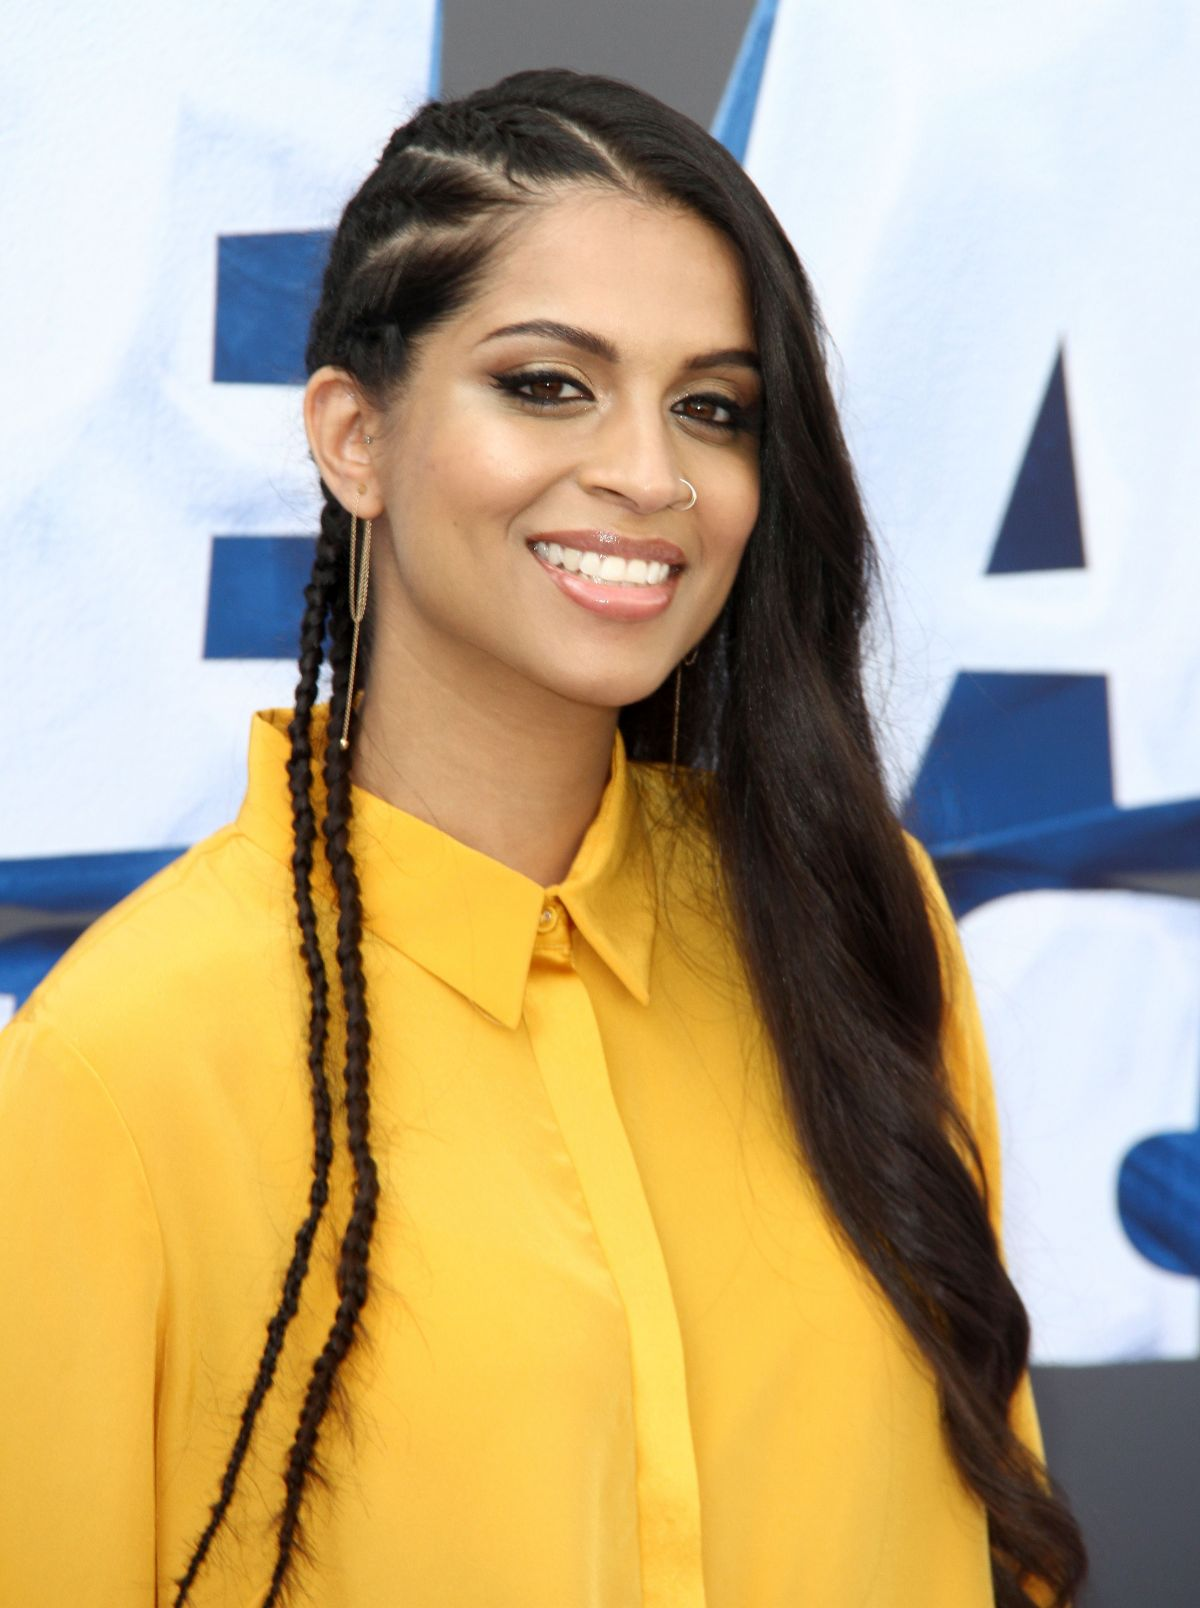 LILLY SINGH at 'Ice Age: Collision Course' Premieee in Los Angeles 07/16/2016